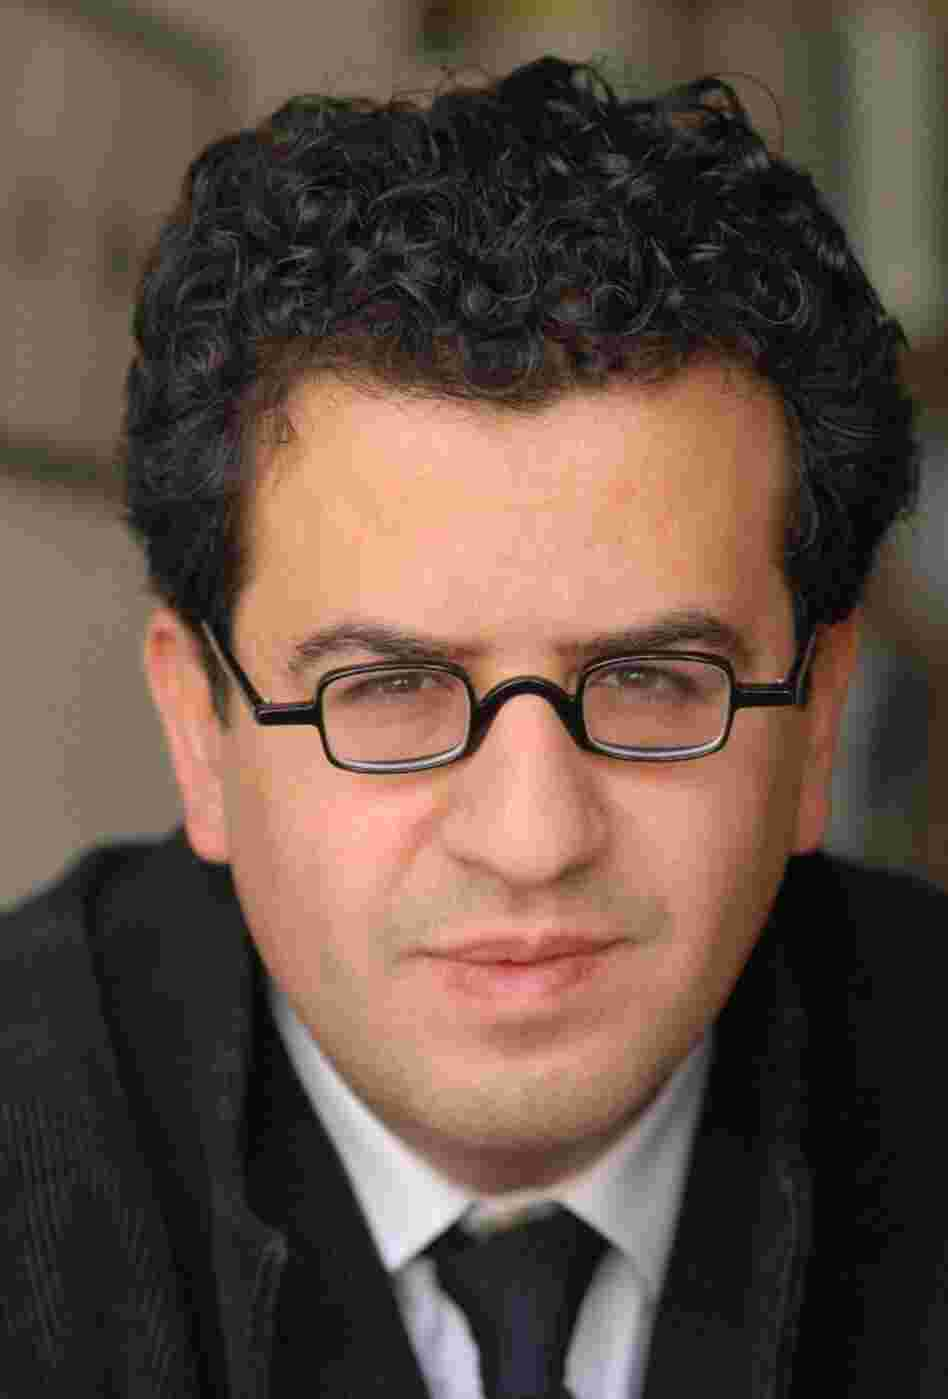 Hisham Matar is also the author of the novel In the Country of Men.